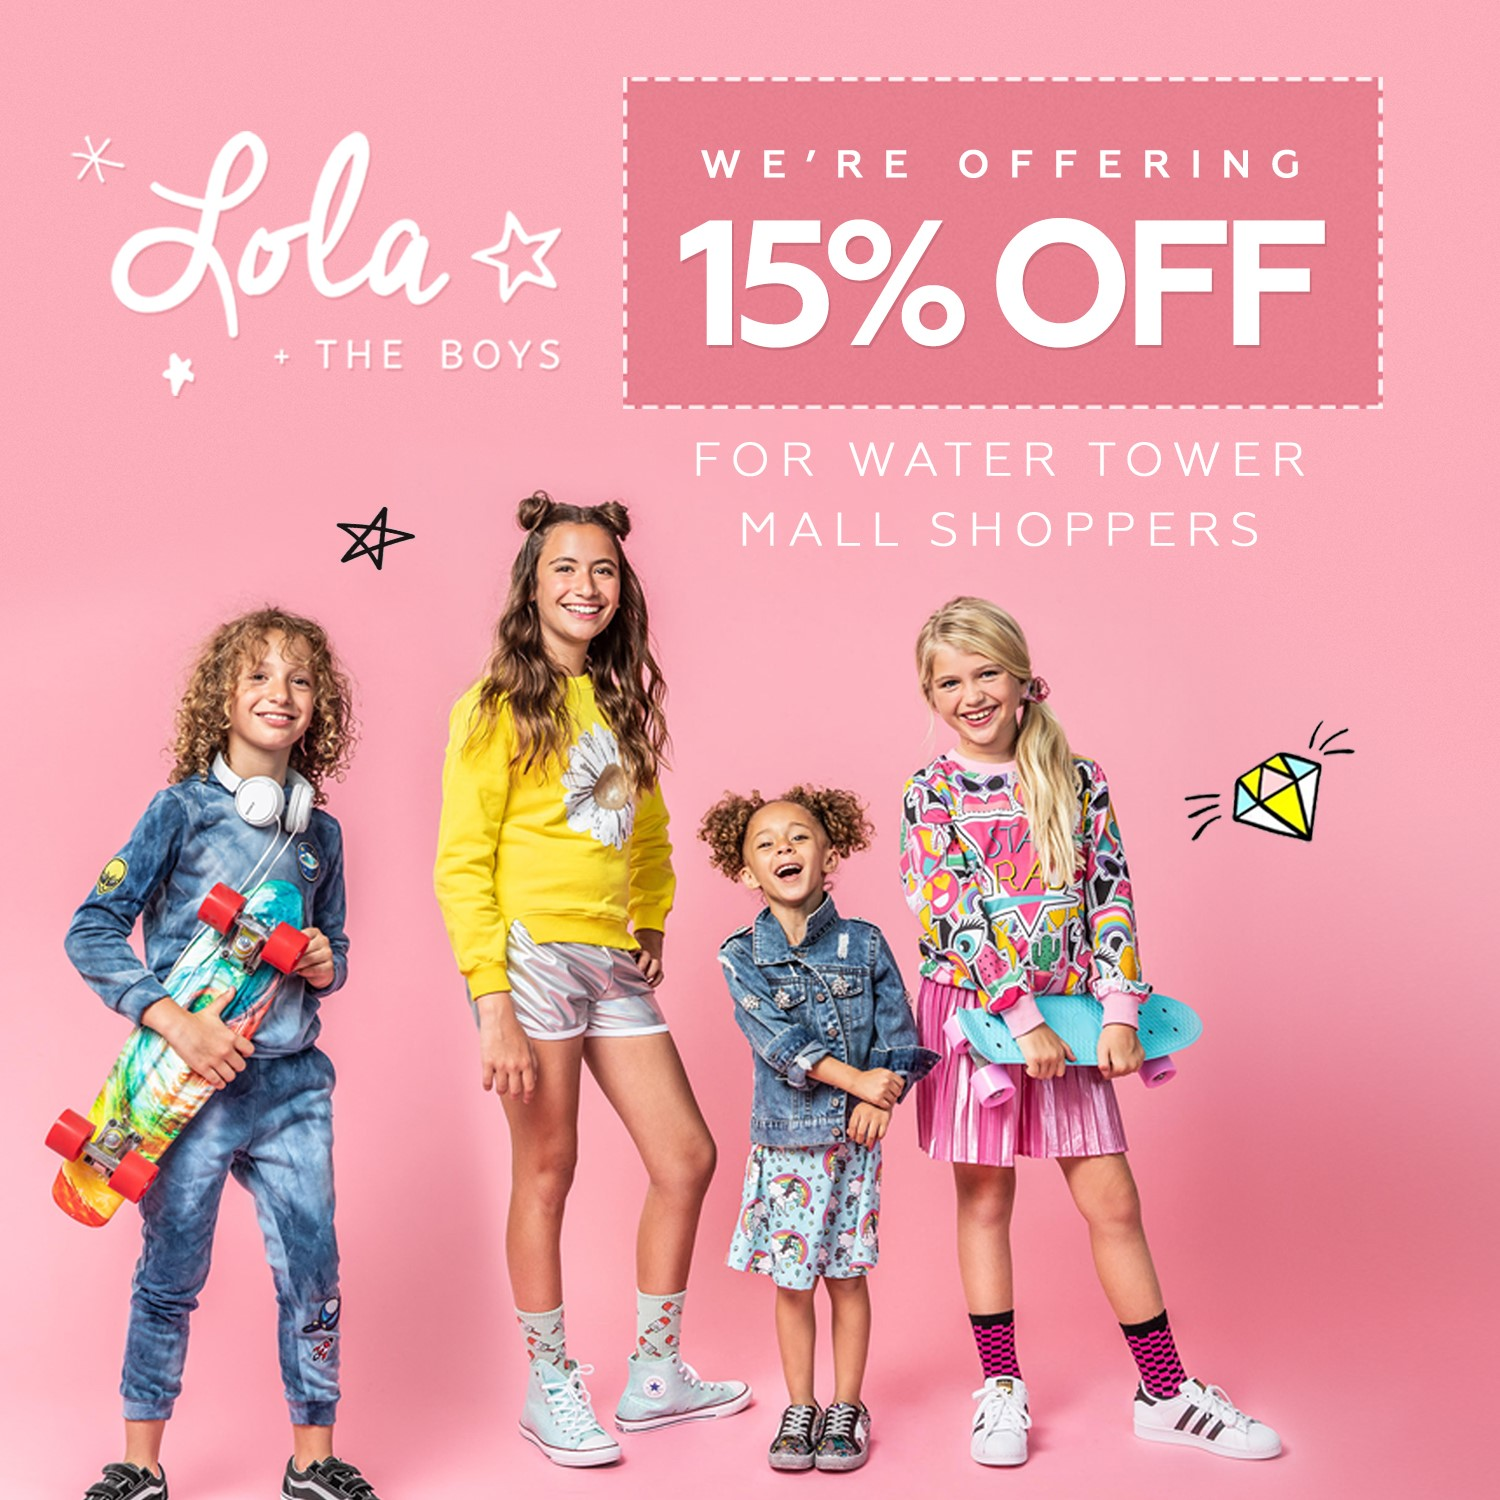 Save 15% on children's apparel at Lola + the Boys